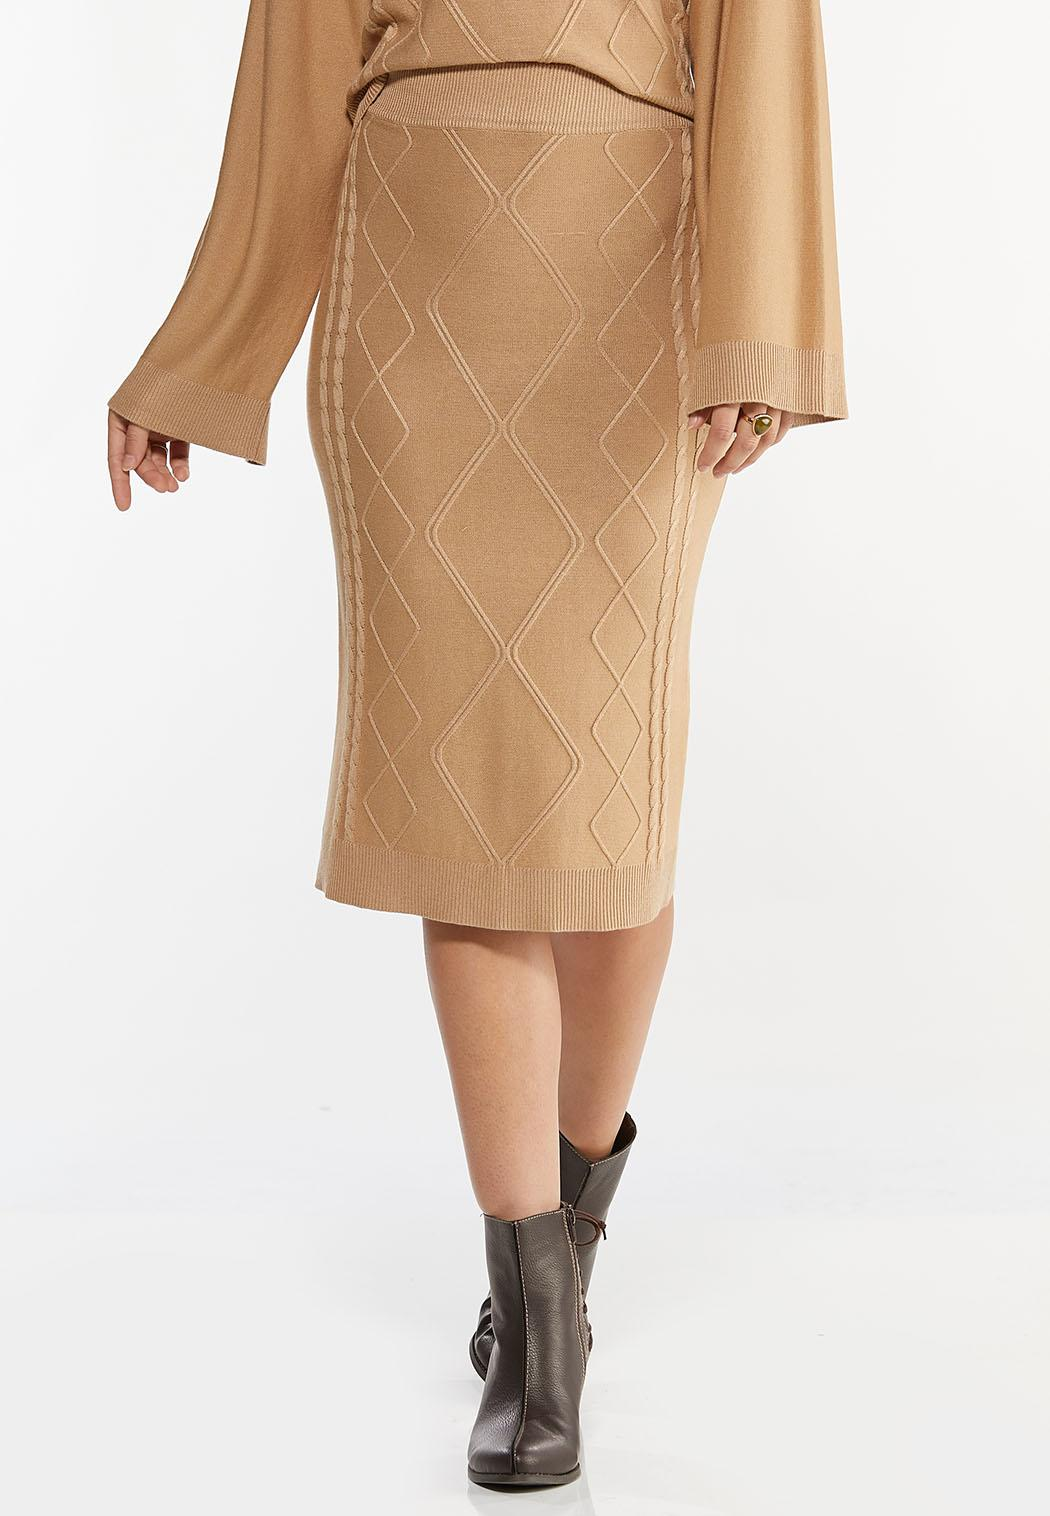 Caramel Cable Knit Skirt